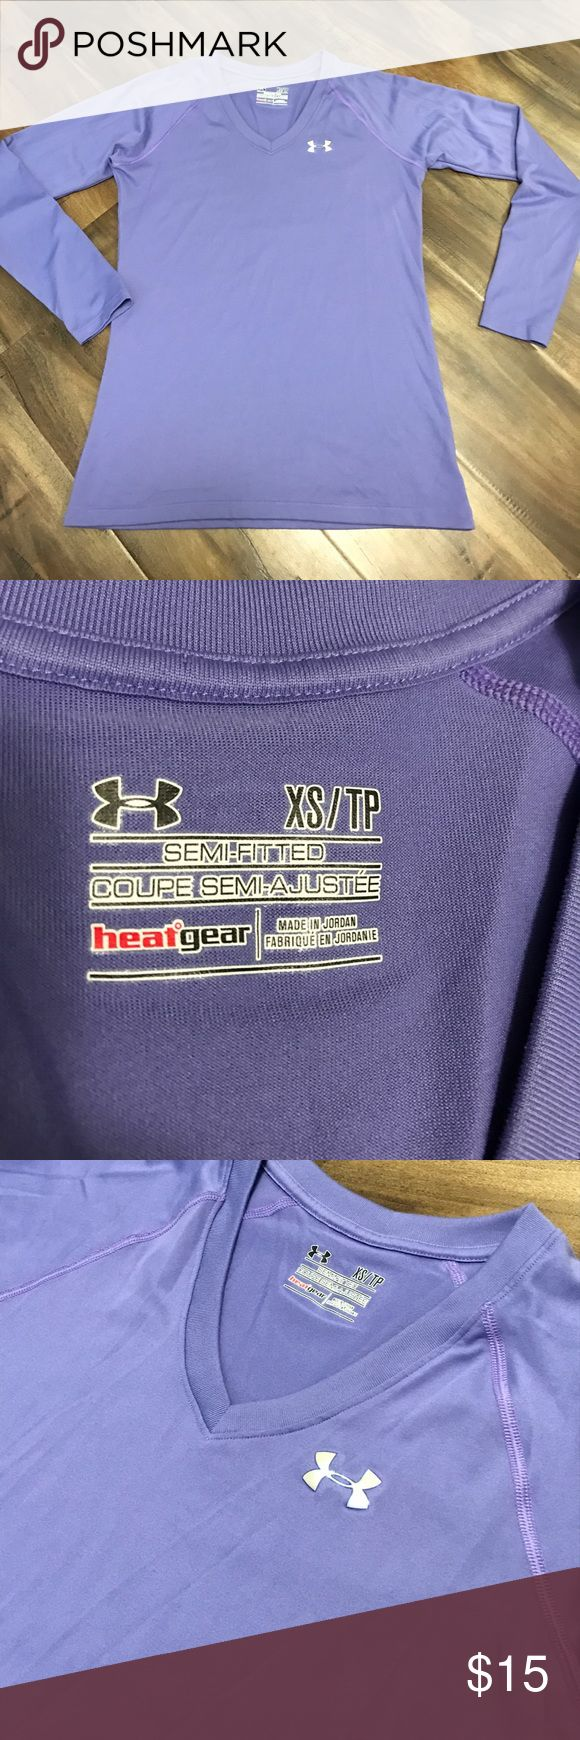 Under Armour purple top Gently used. Perfect condition. True to size! Under Armour Tops